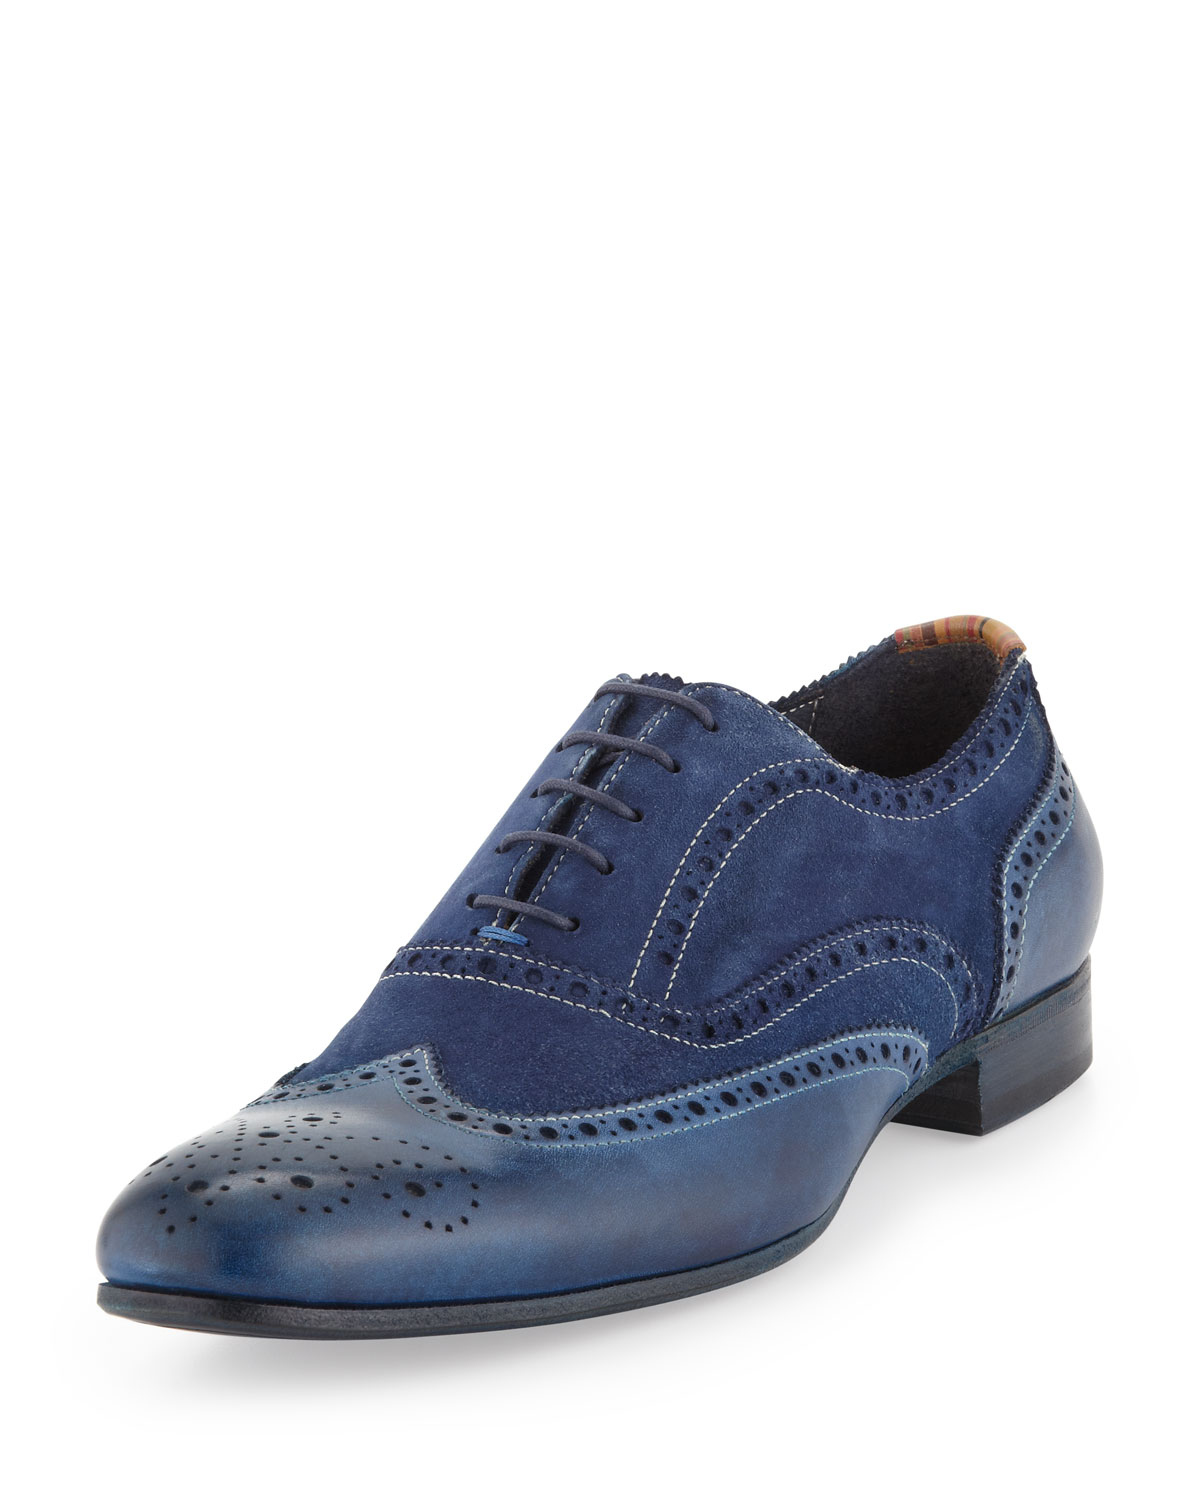 Paul Smith Miller Dip-Dyed Leather Wing-Tip, Navy